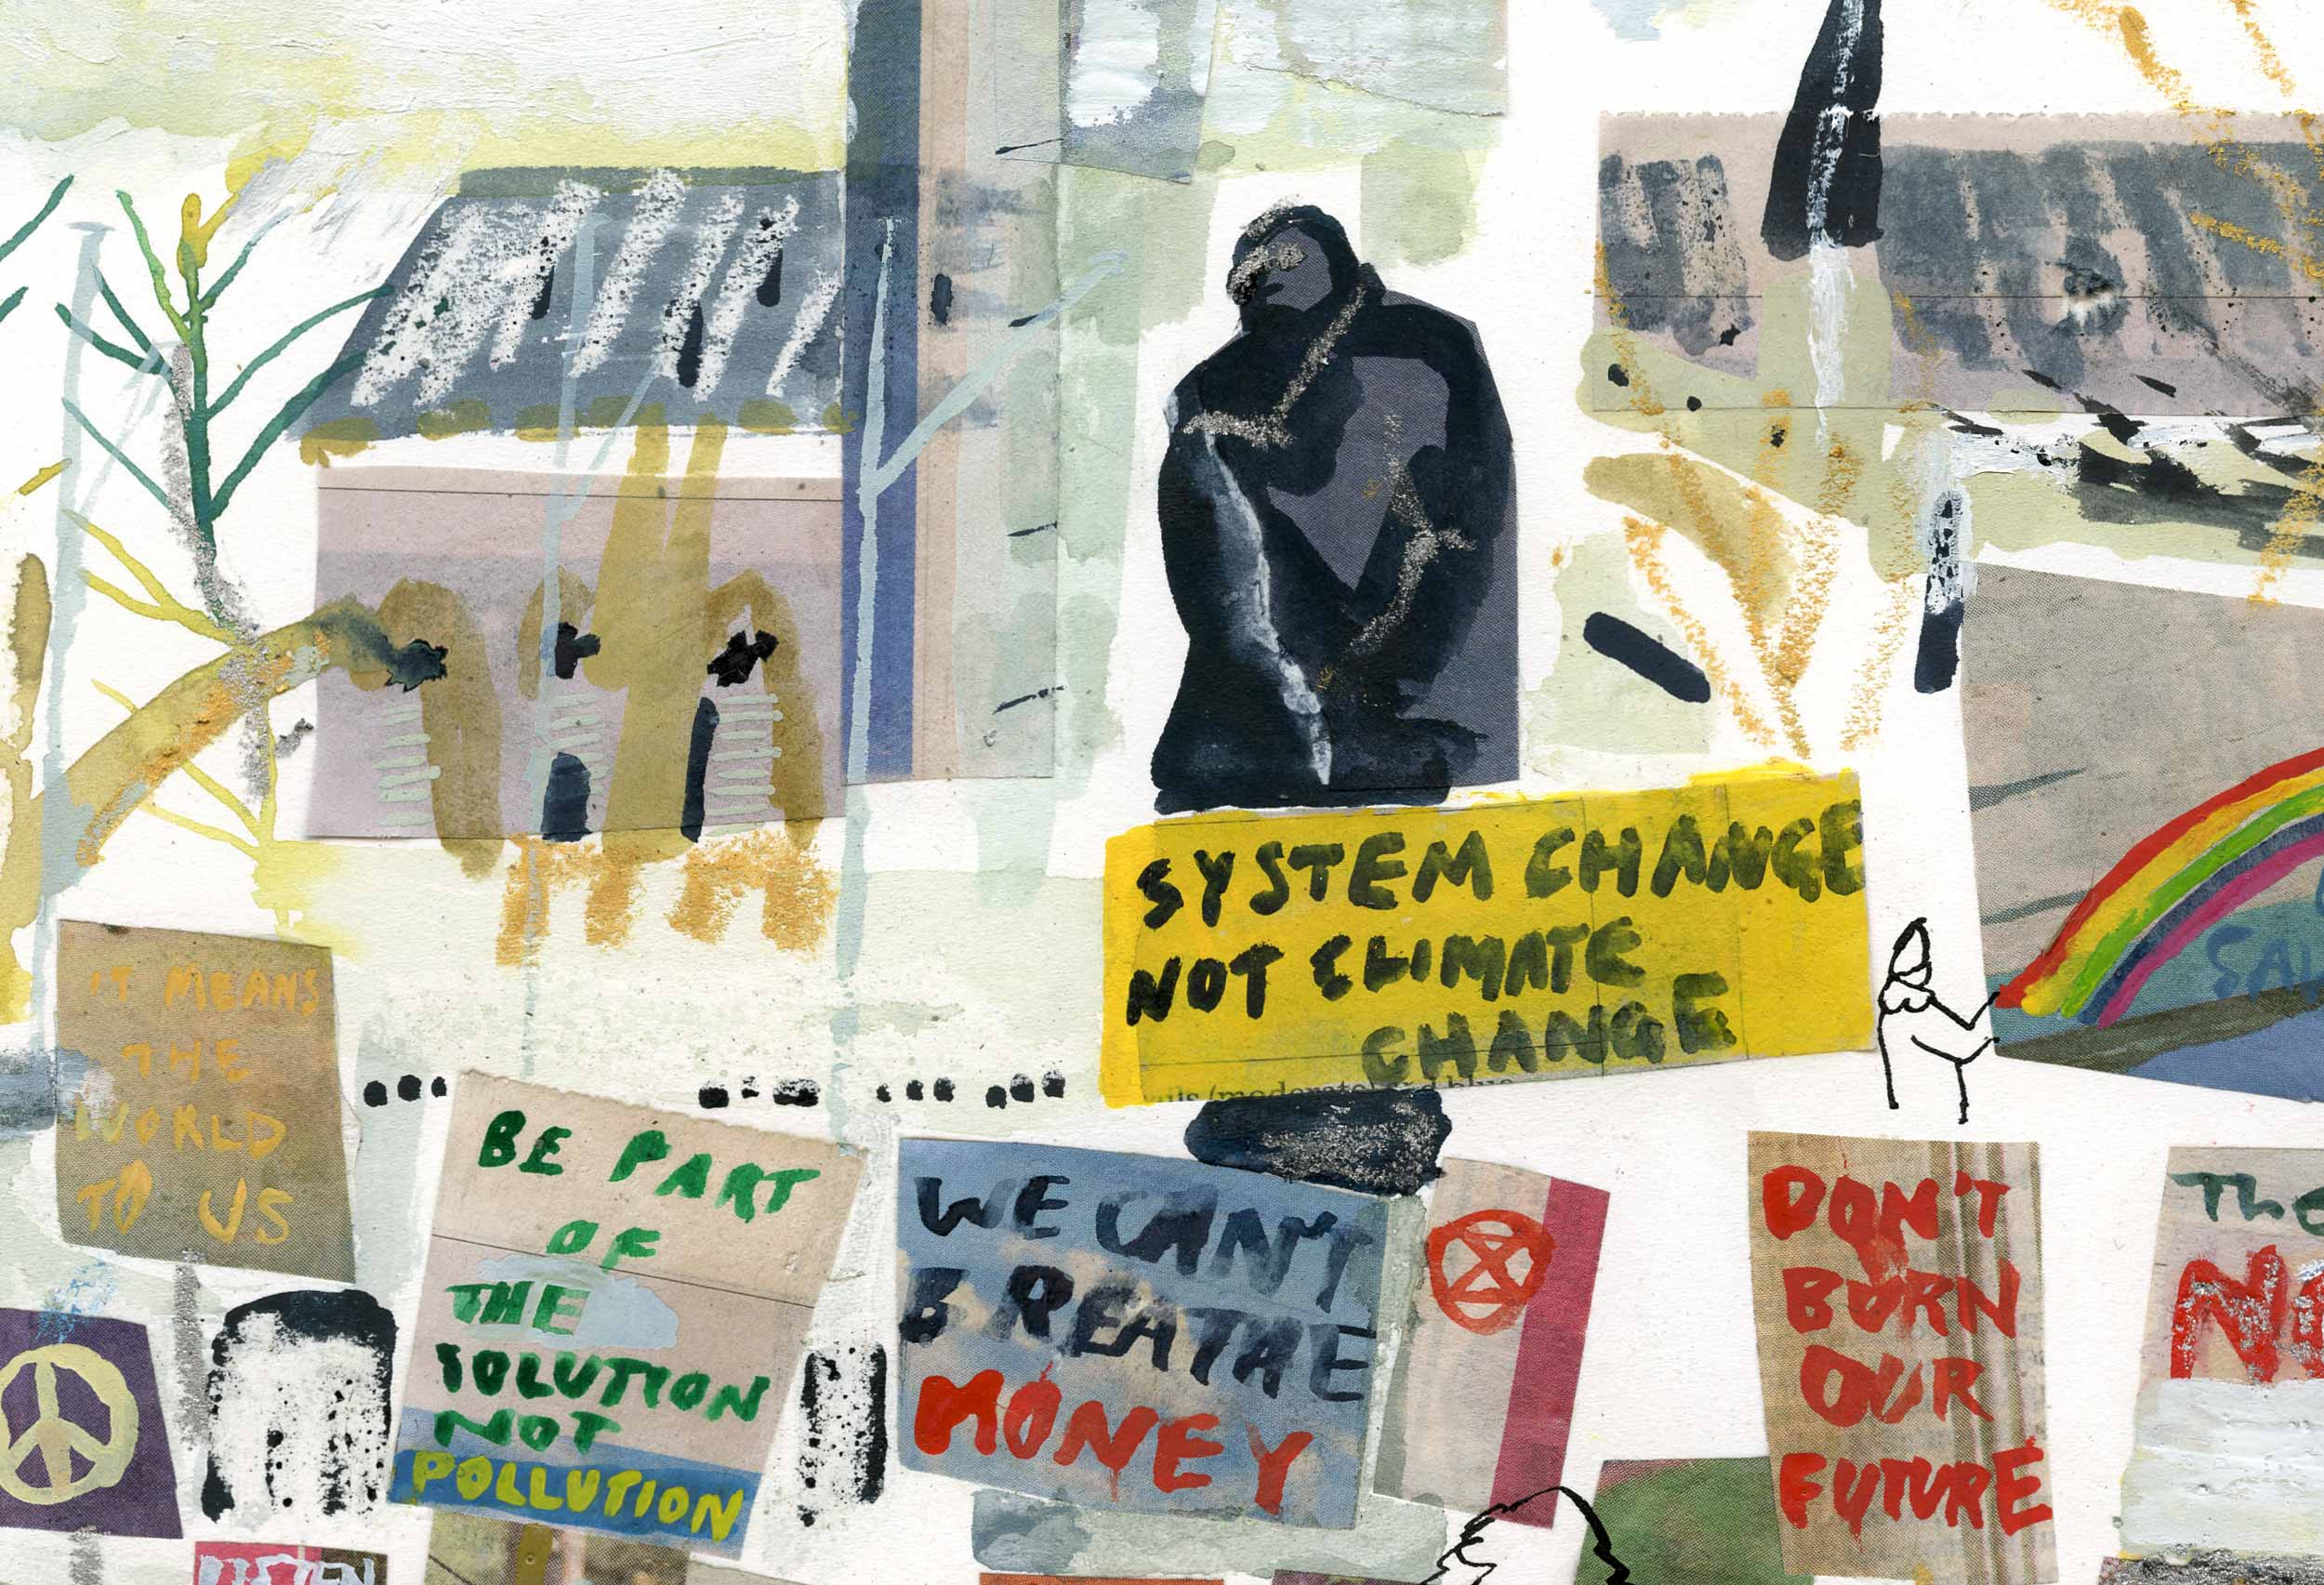 School strike for climate by James Oses, image 4